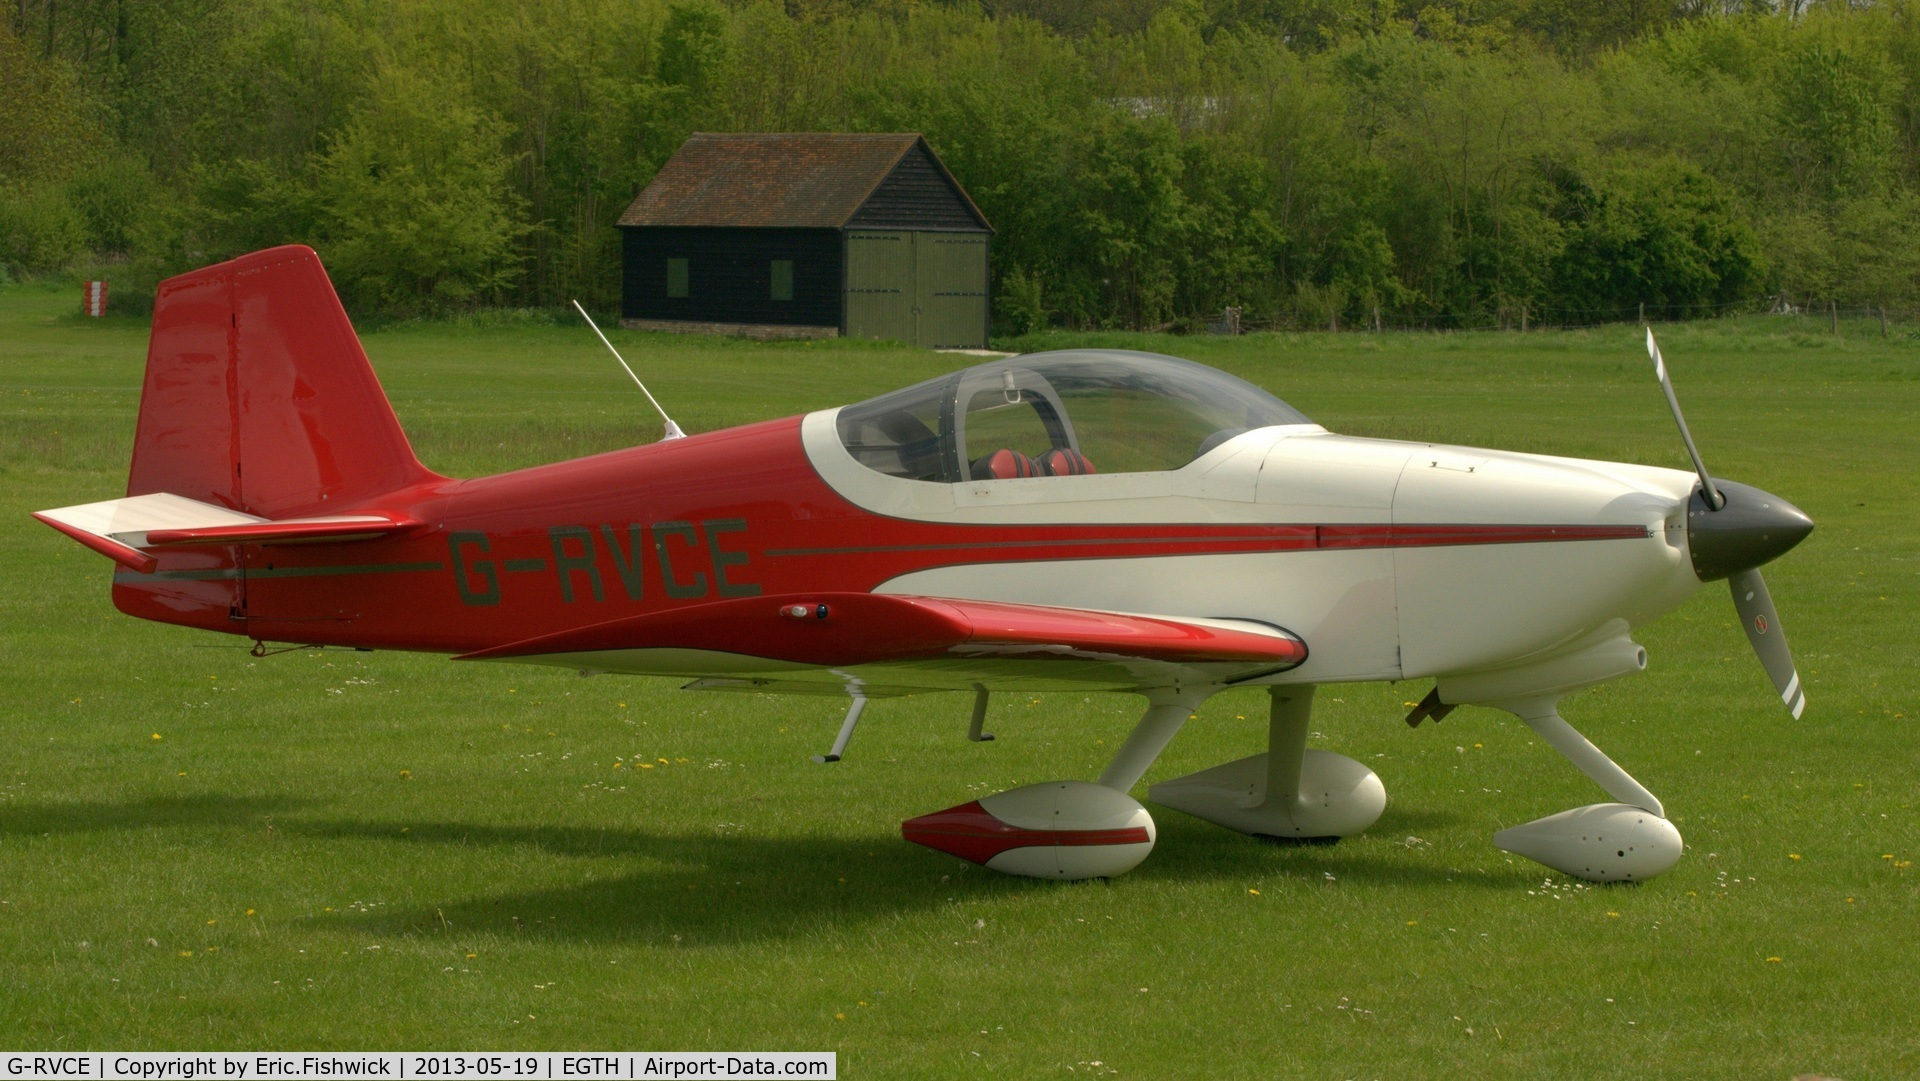 G-RVCE, 2001 Vans RV-6A C/N PFA 181-13372, 2. G-RVCE at Shuttleworth Flying Day and LAA Party in the Park, May 2013.